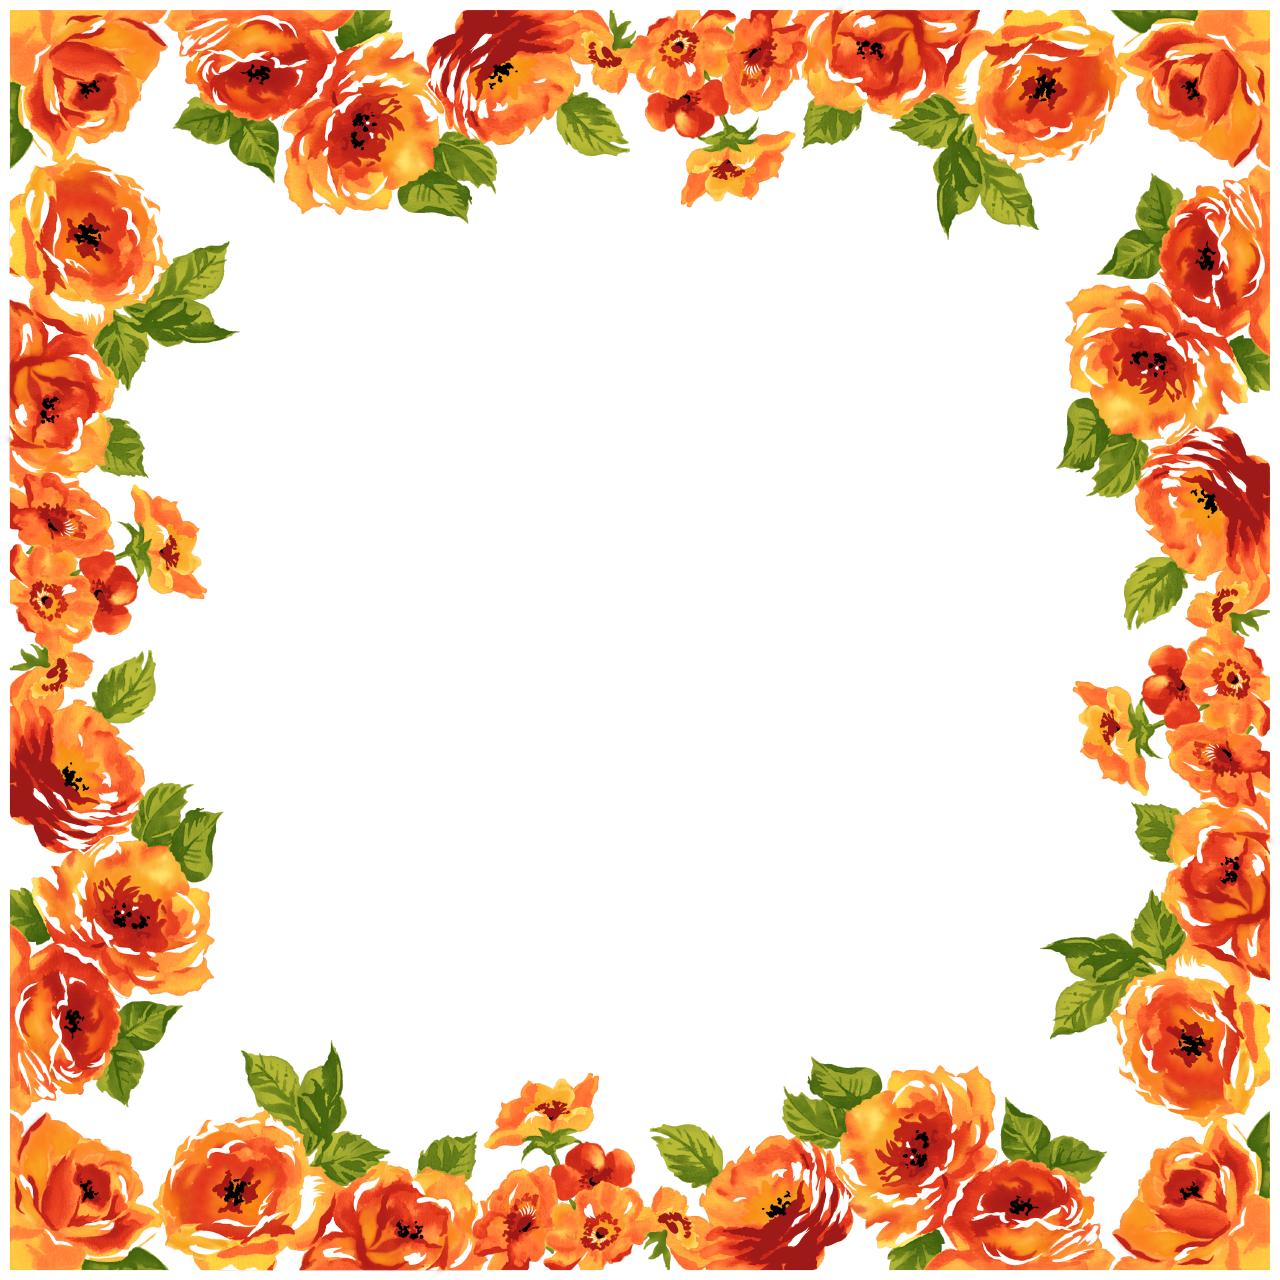 Fancy Wedding Border Transparent PNG Image